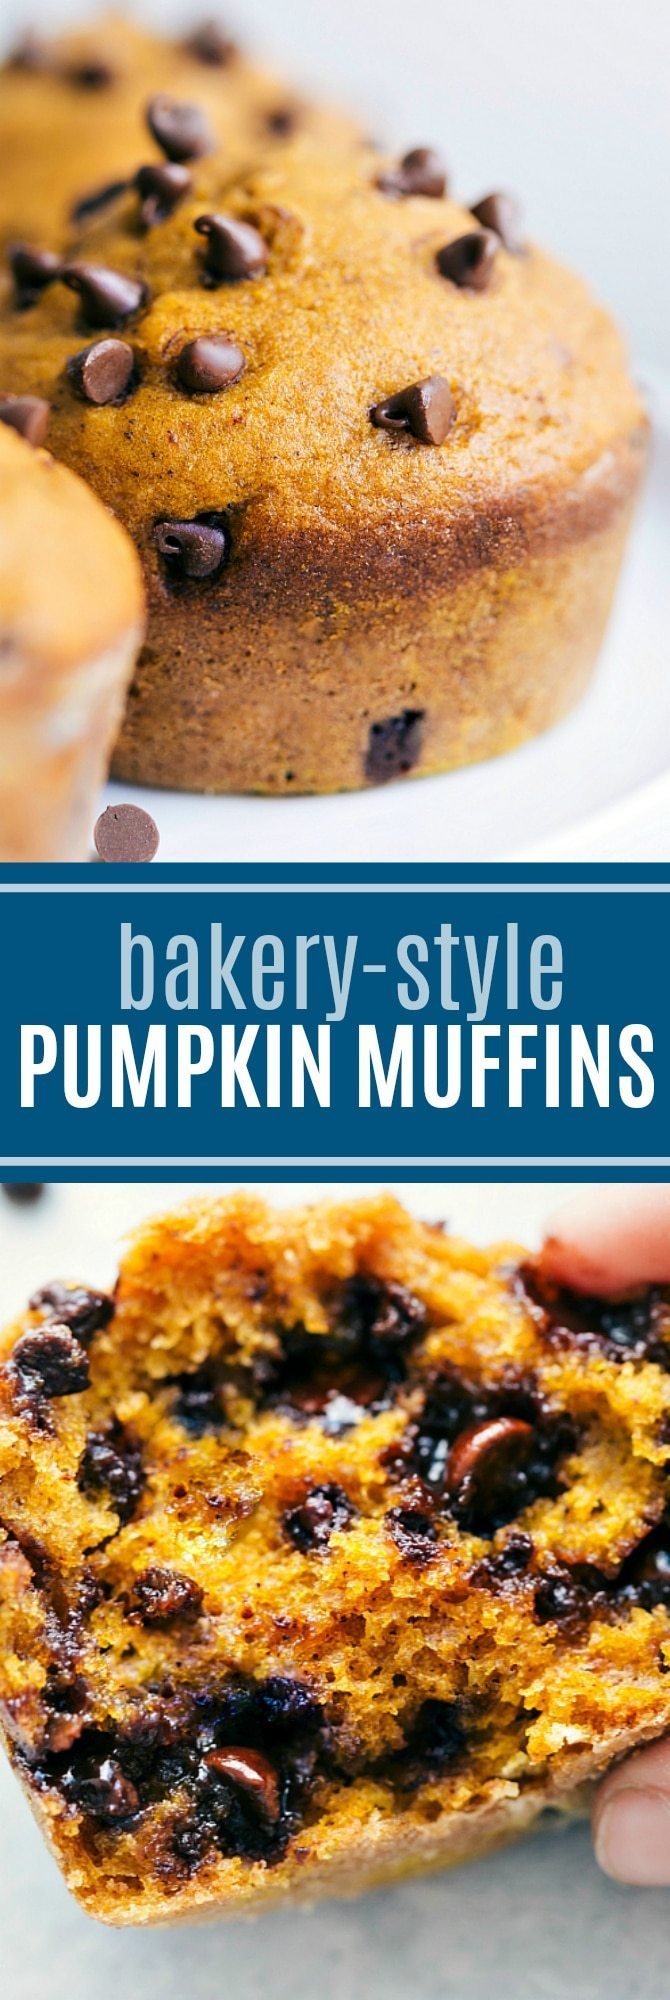 The ultimate BEST EVER bakery-style pumpkin muffins! Read the rave reviews!! via chelseasmessyapron.com